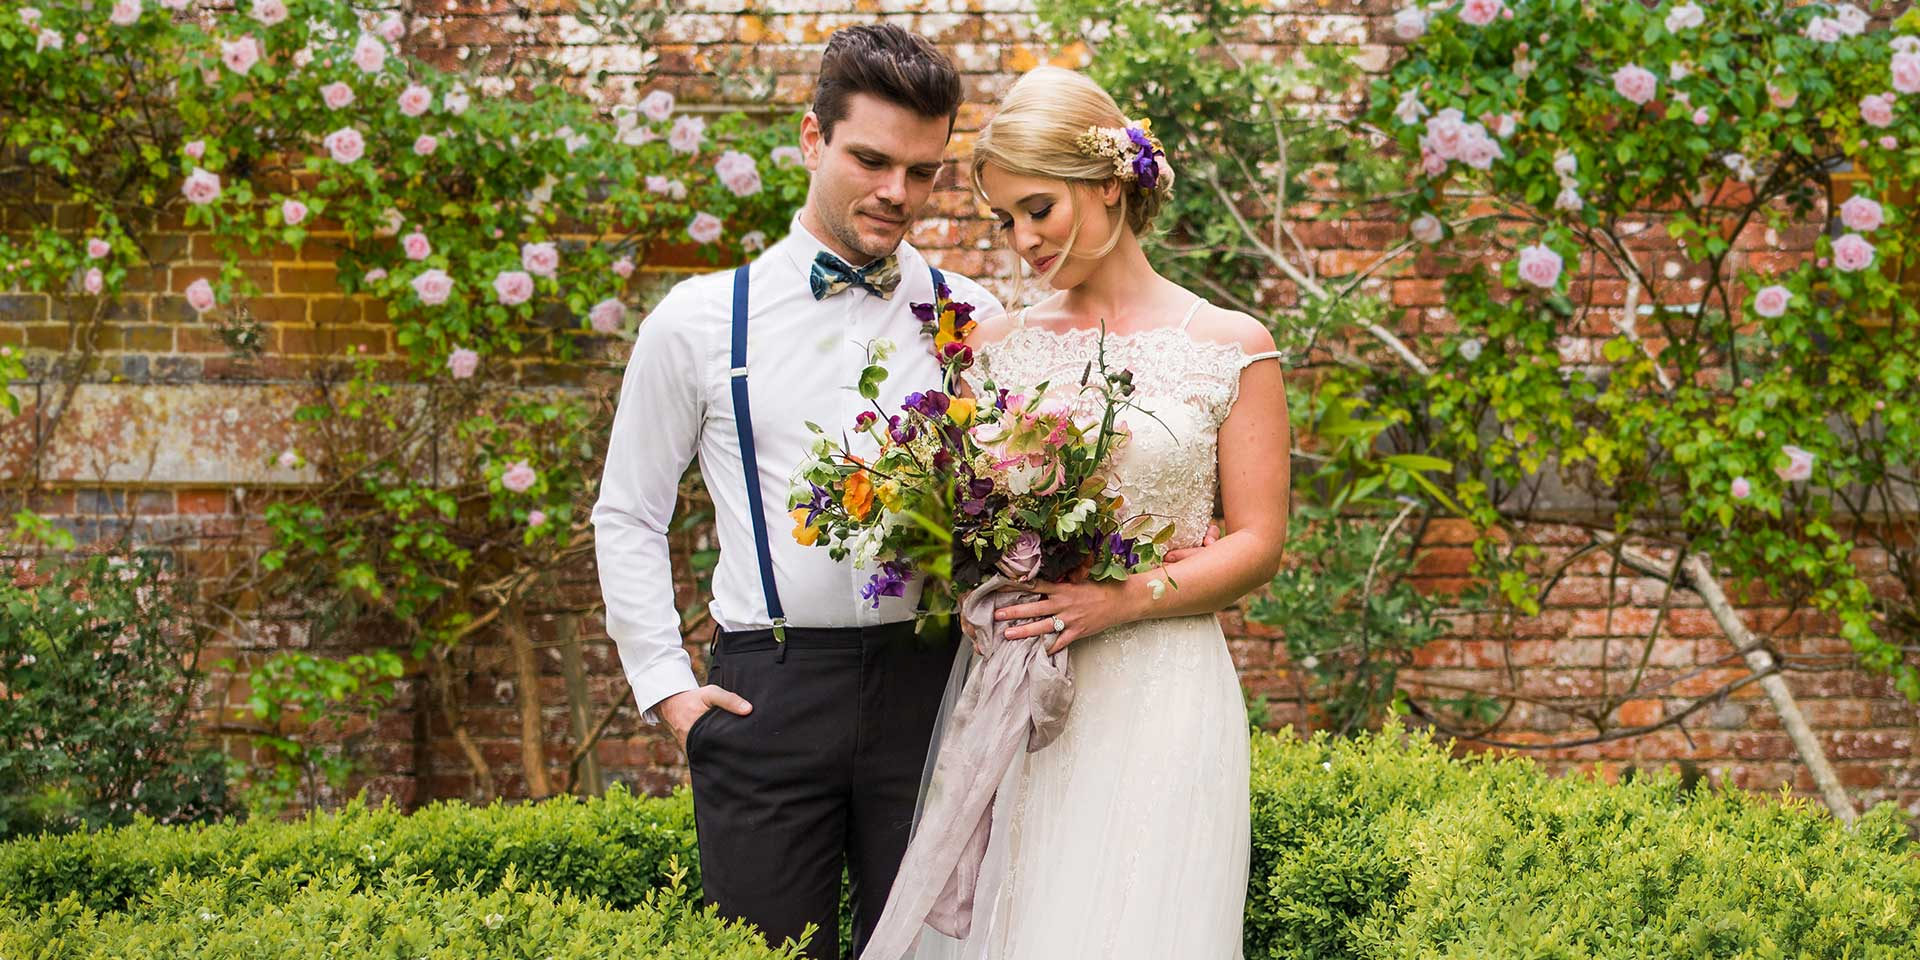 A bride and groom take a walk around the walled gardens at Syrencot on their wedding day